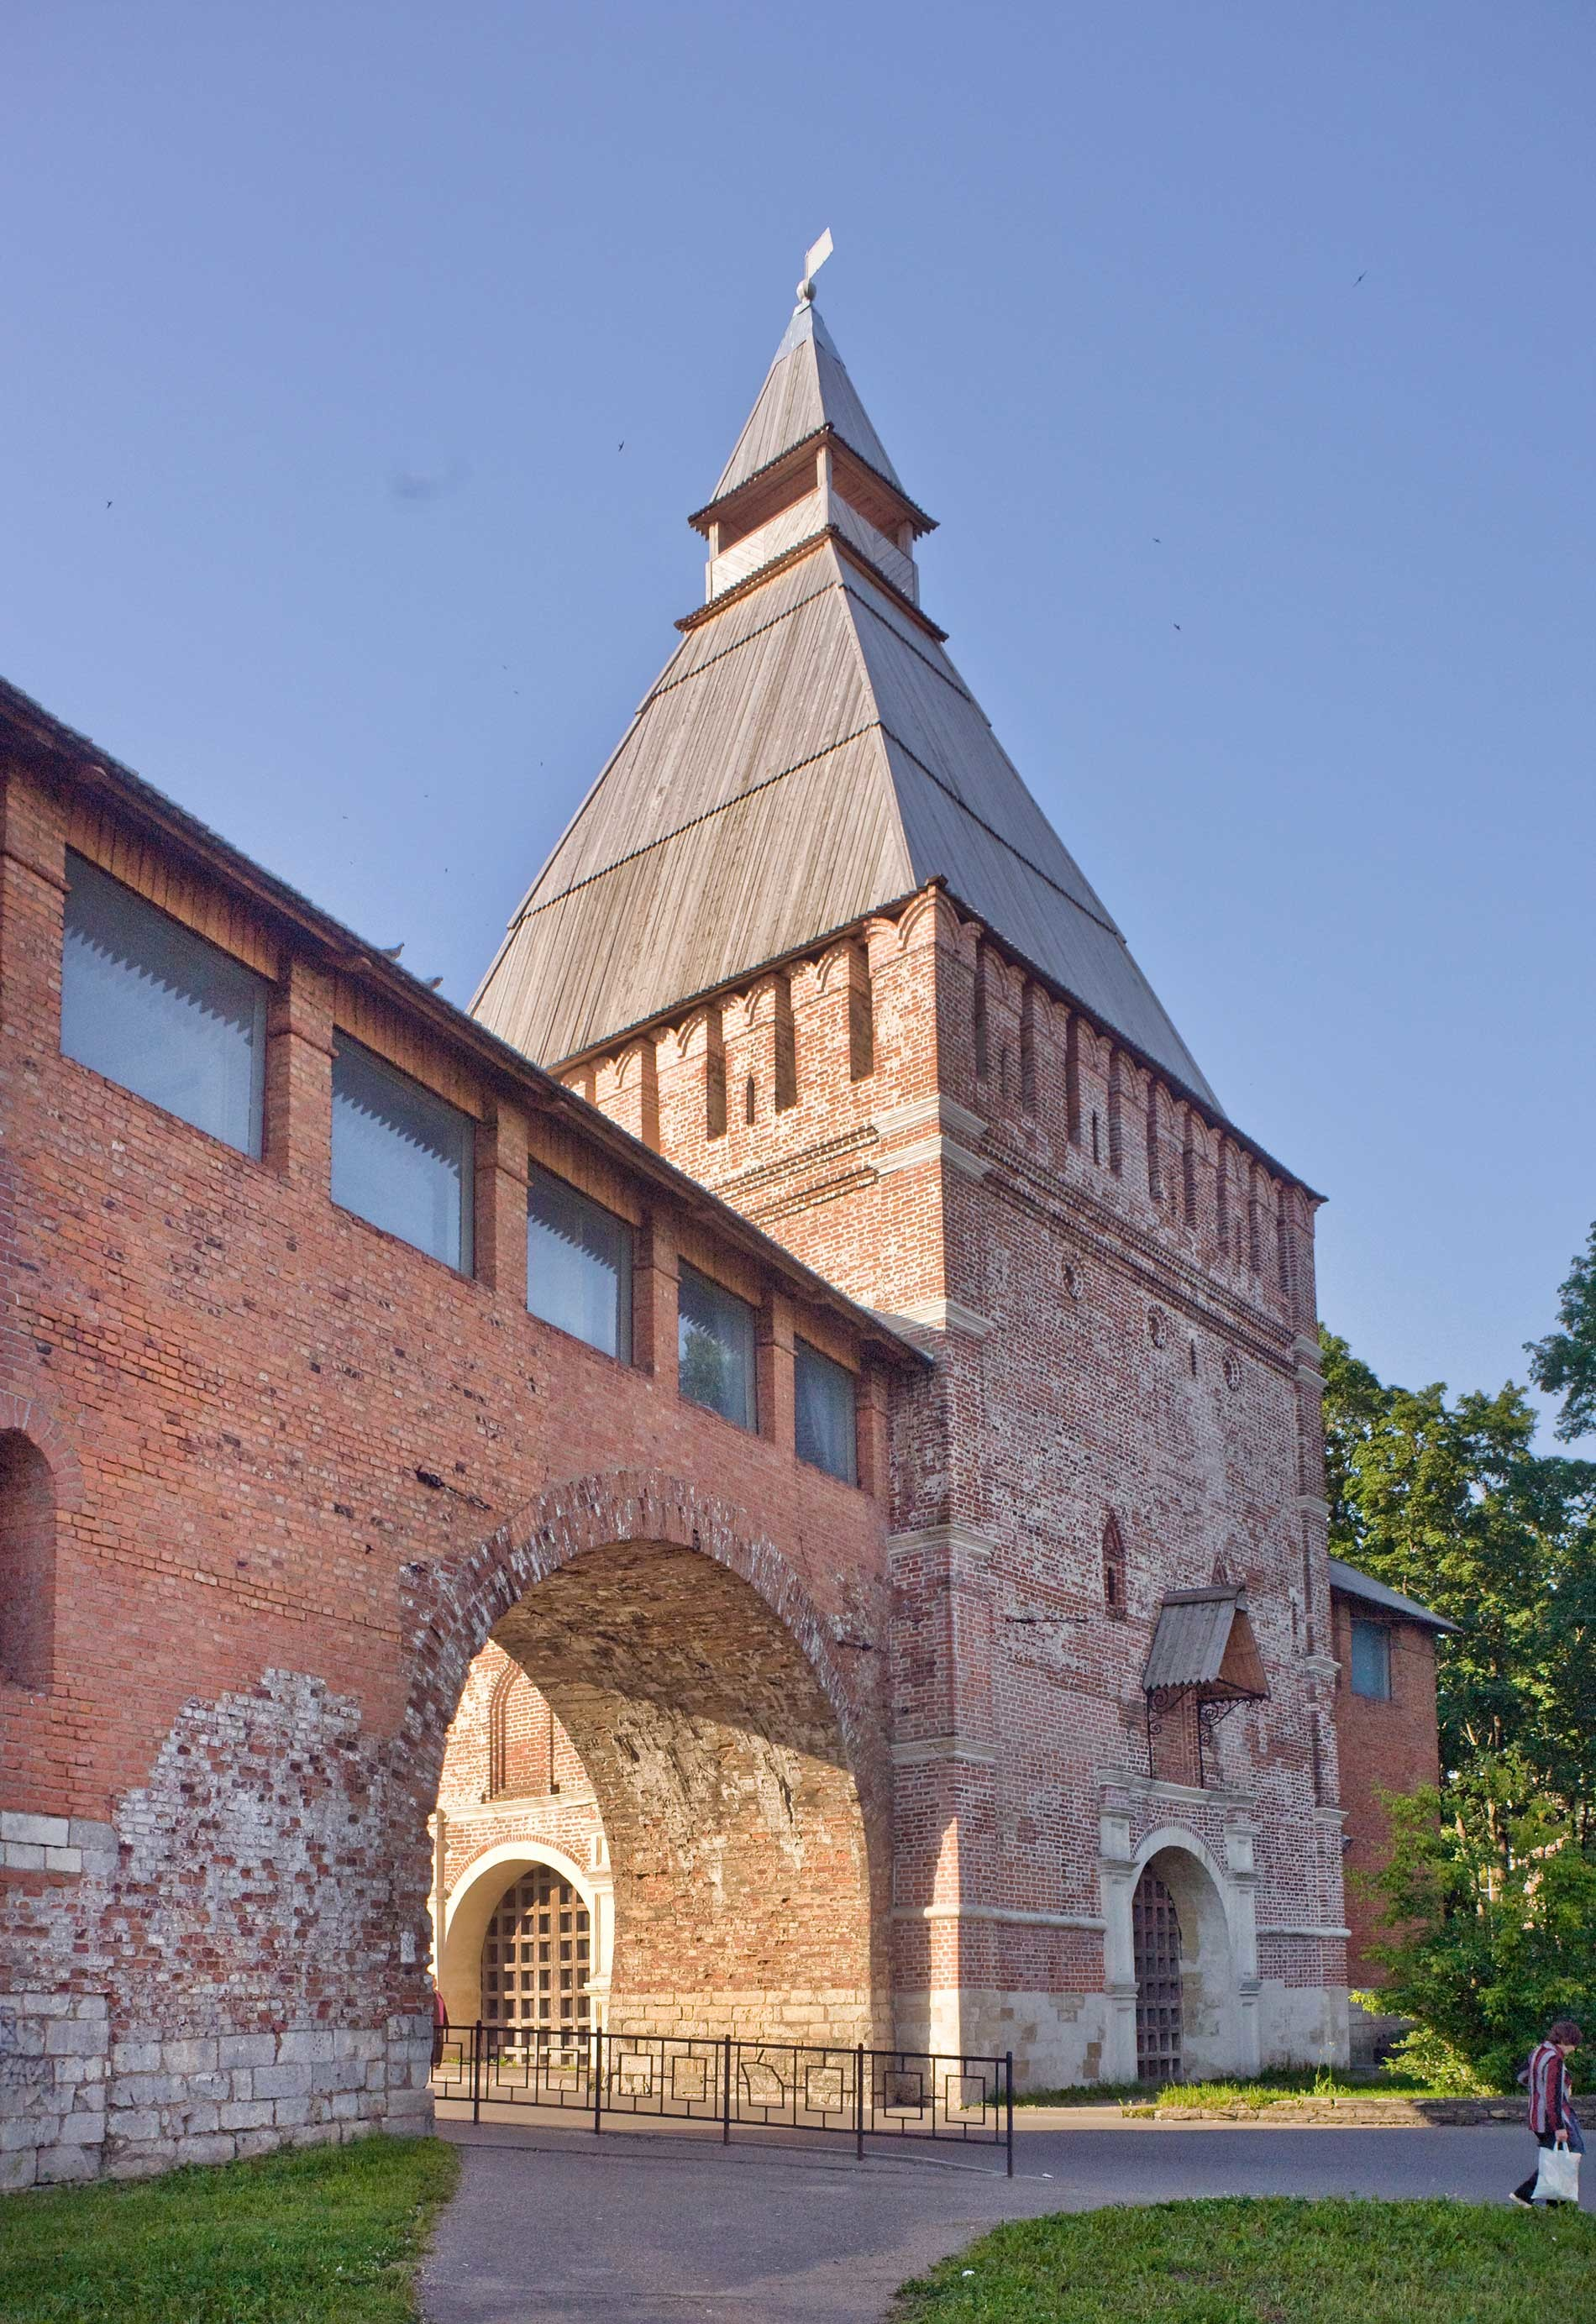 Smolensk citadel. St Nicholas Gate and Tower. July 1, 2014